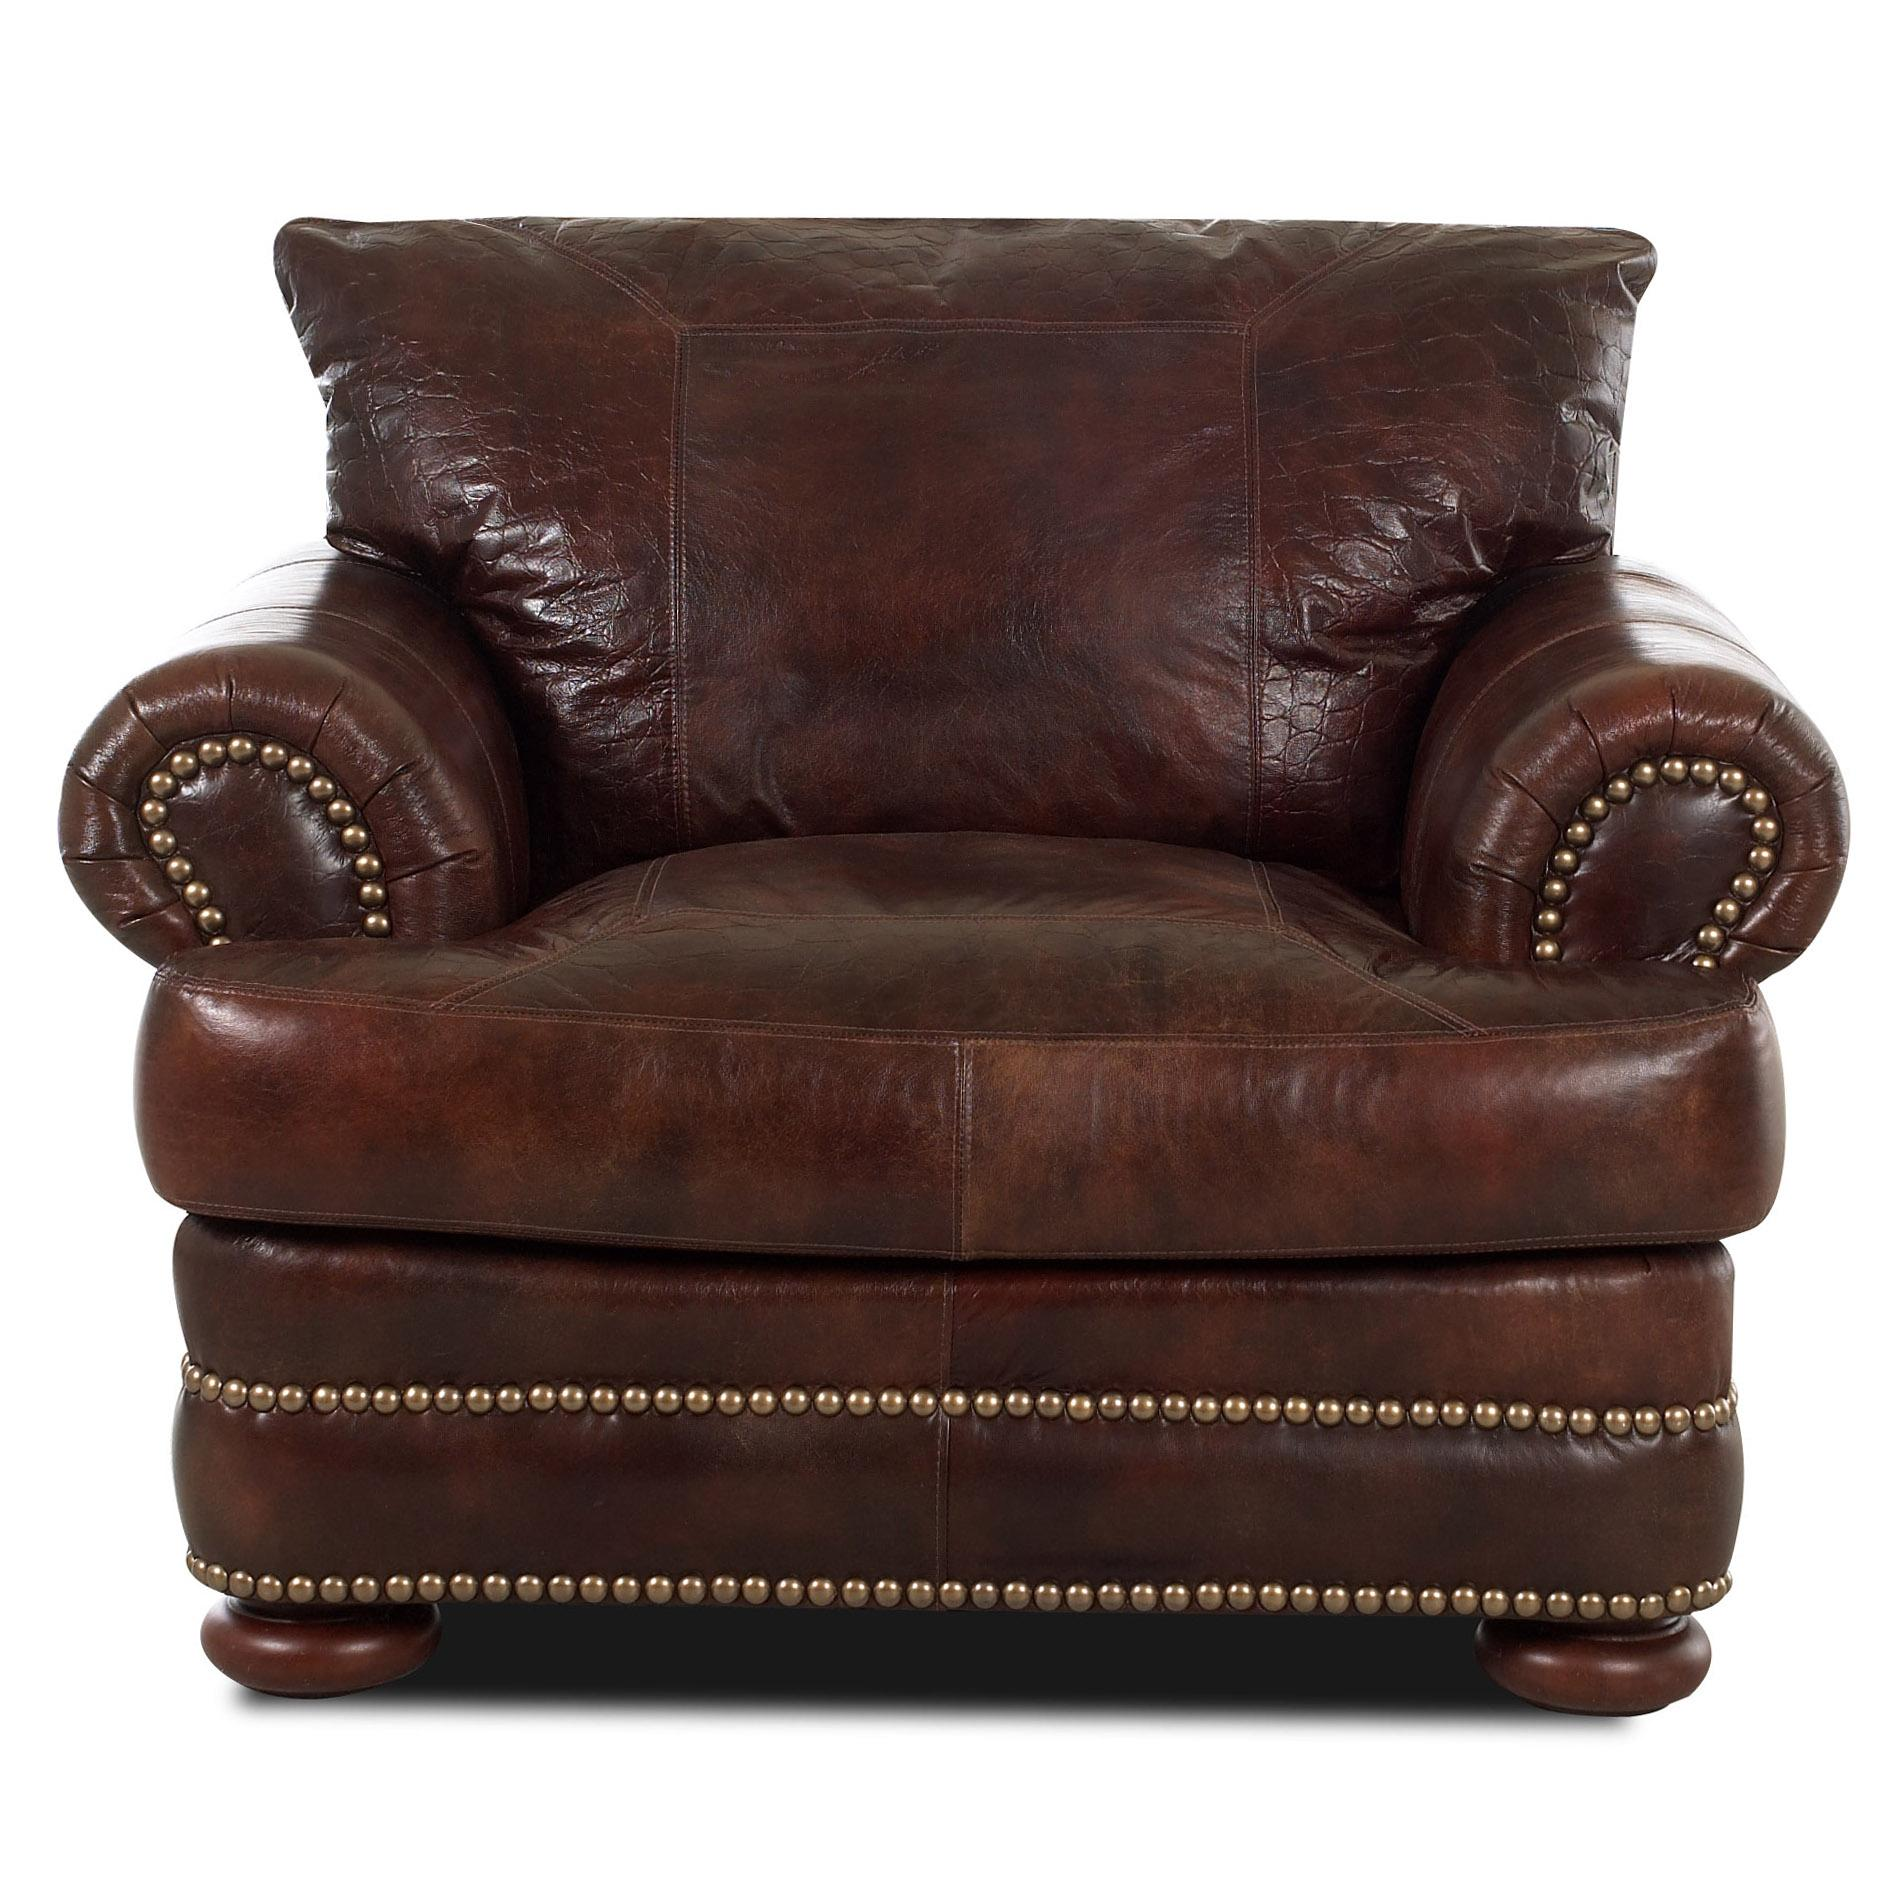 Montezuma Leather Chair by Klaussner at H.L. Stephens